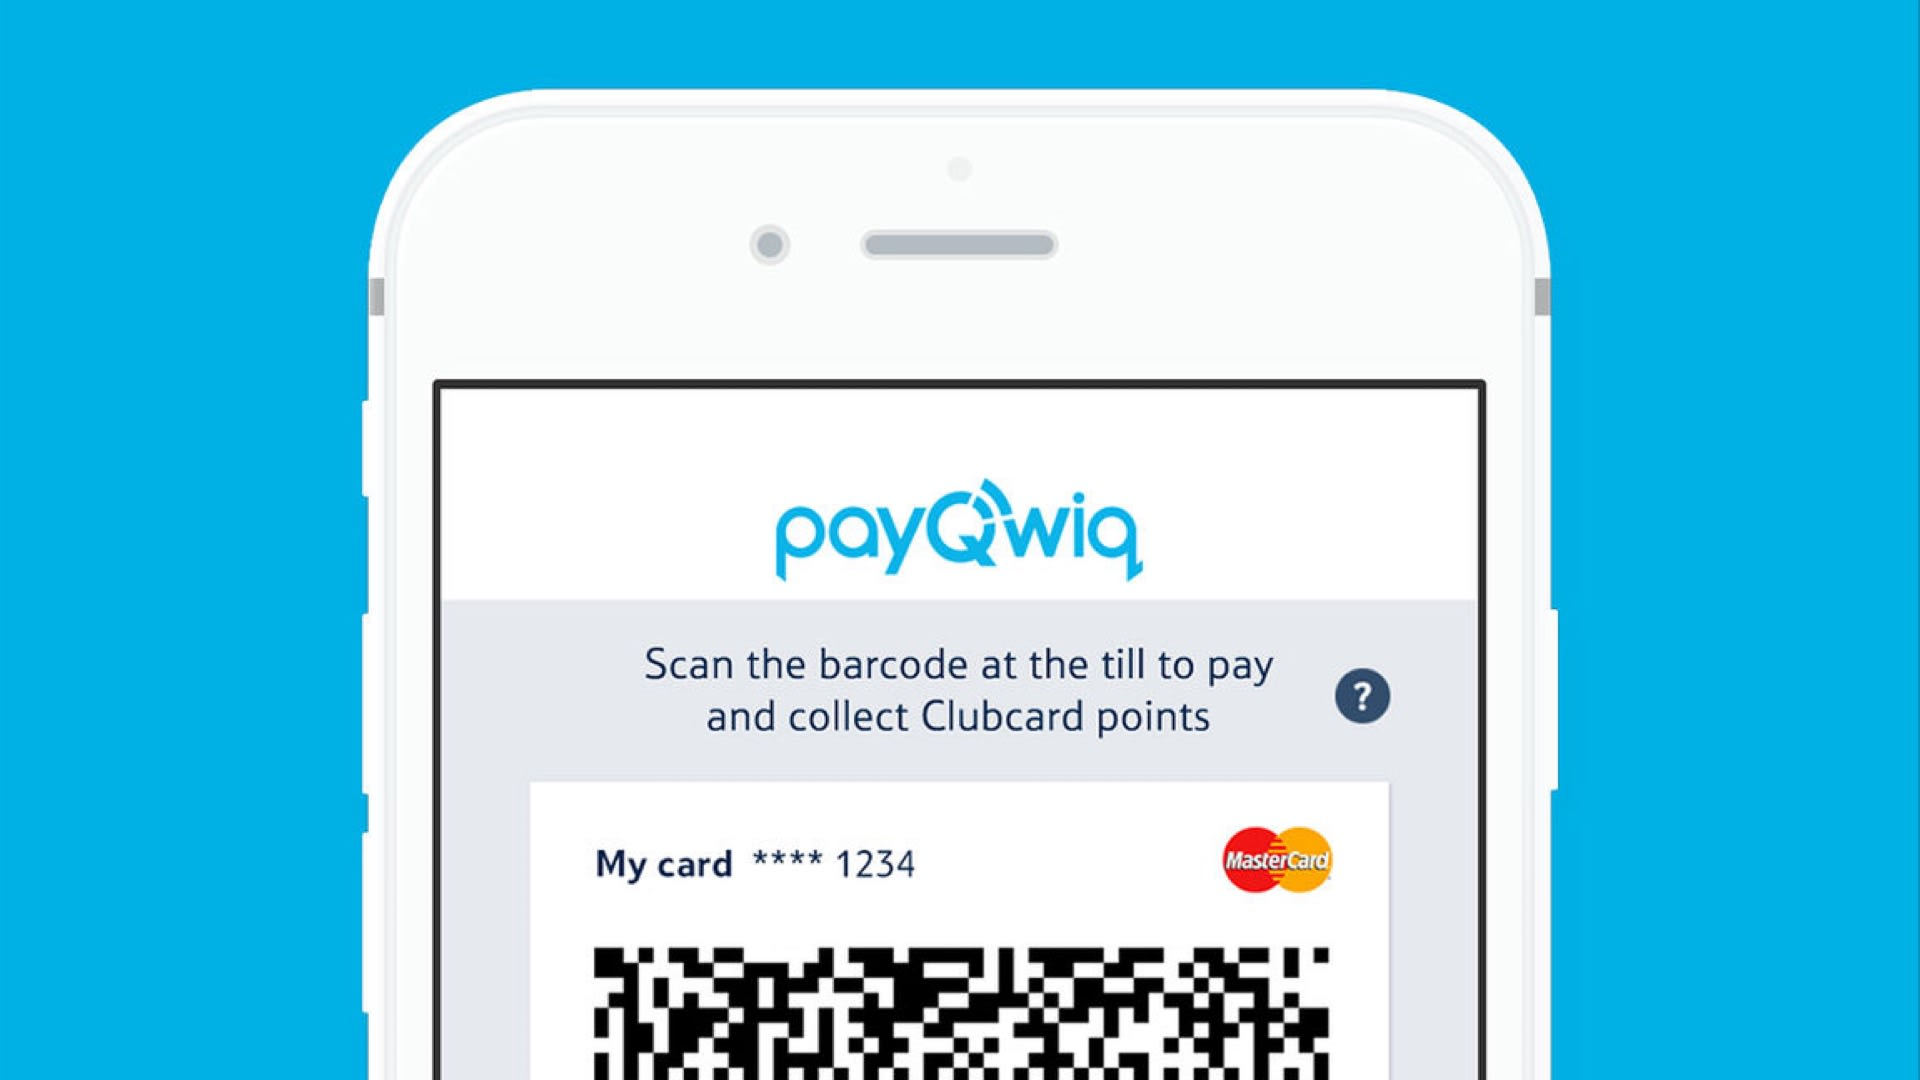 Tesco's mobile payment app is ready for everyone